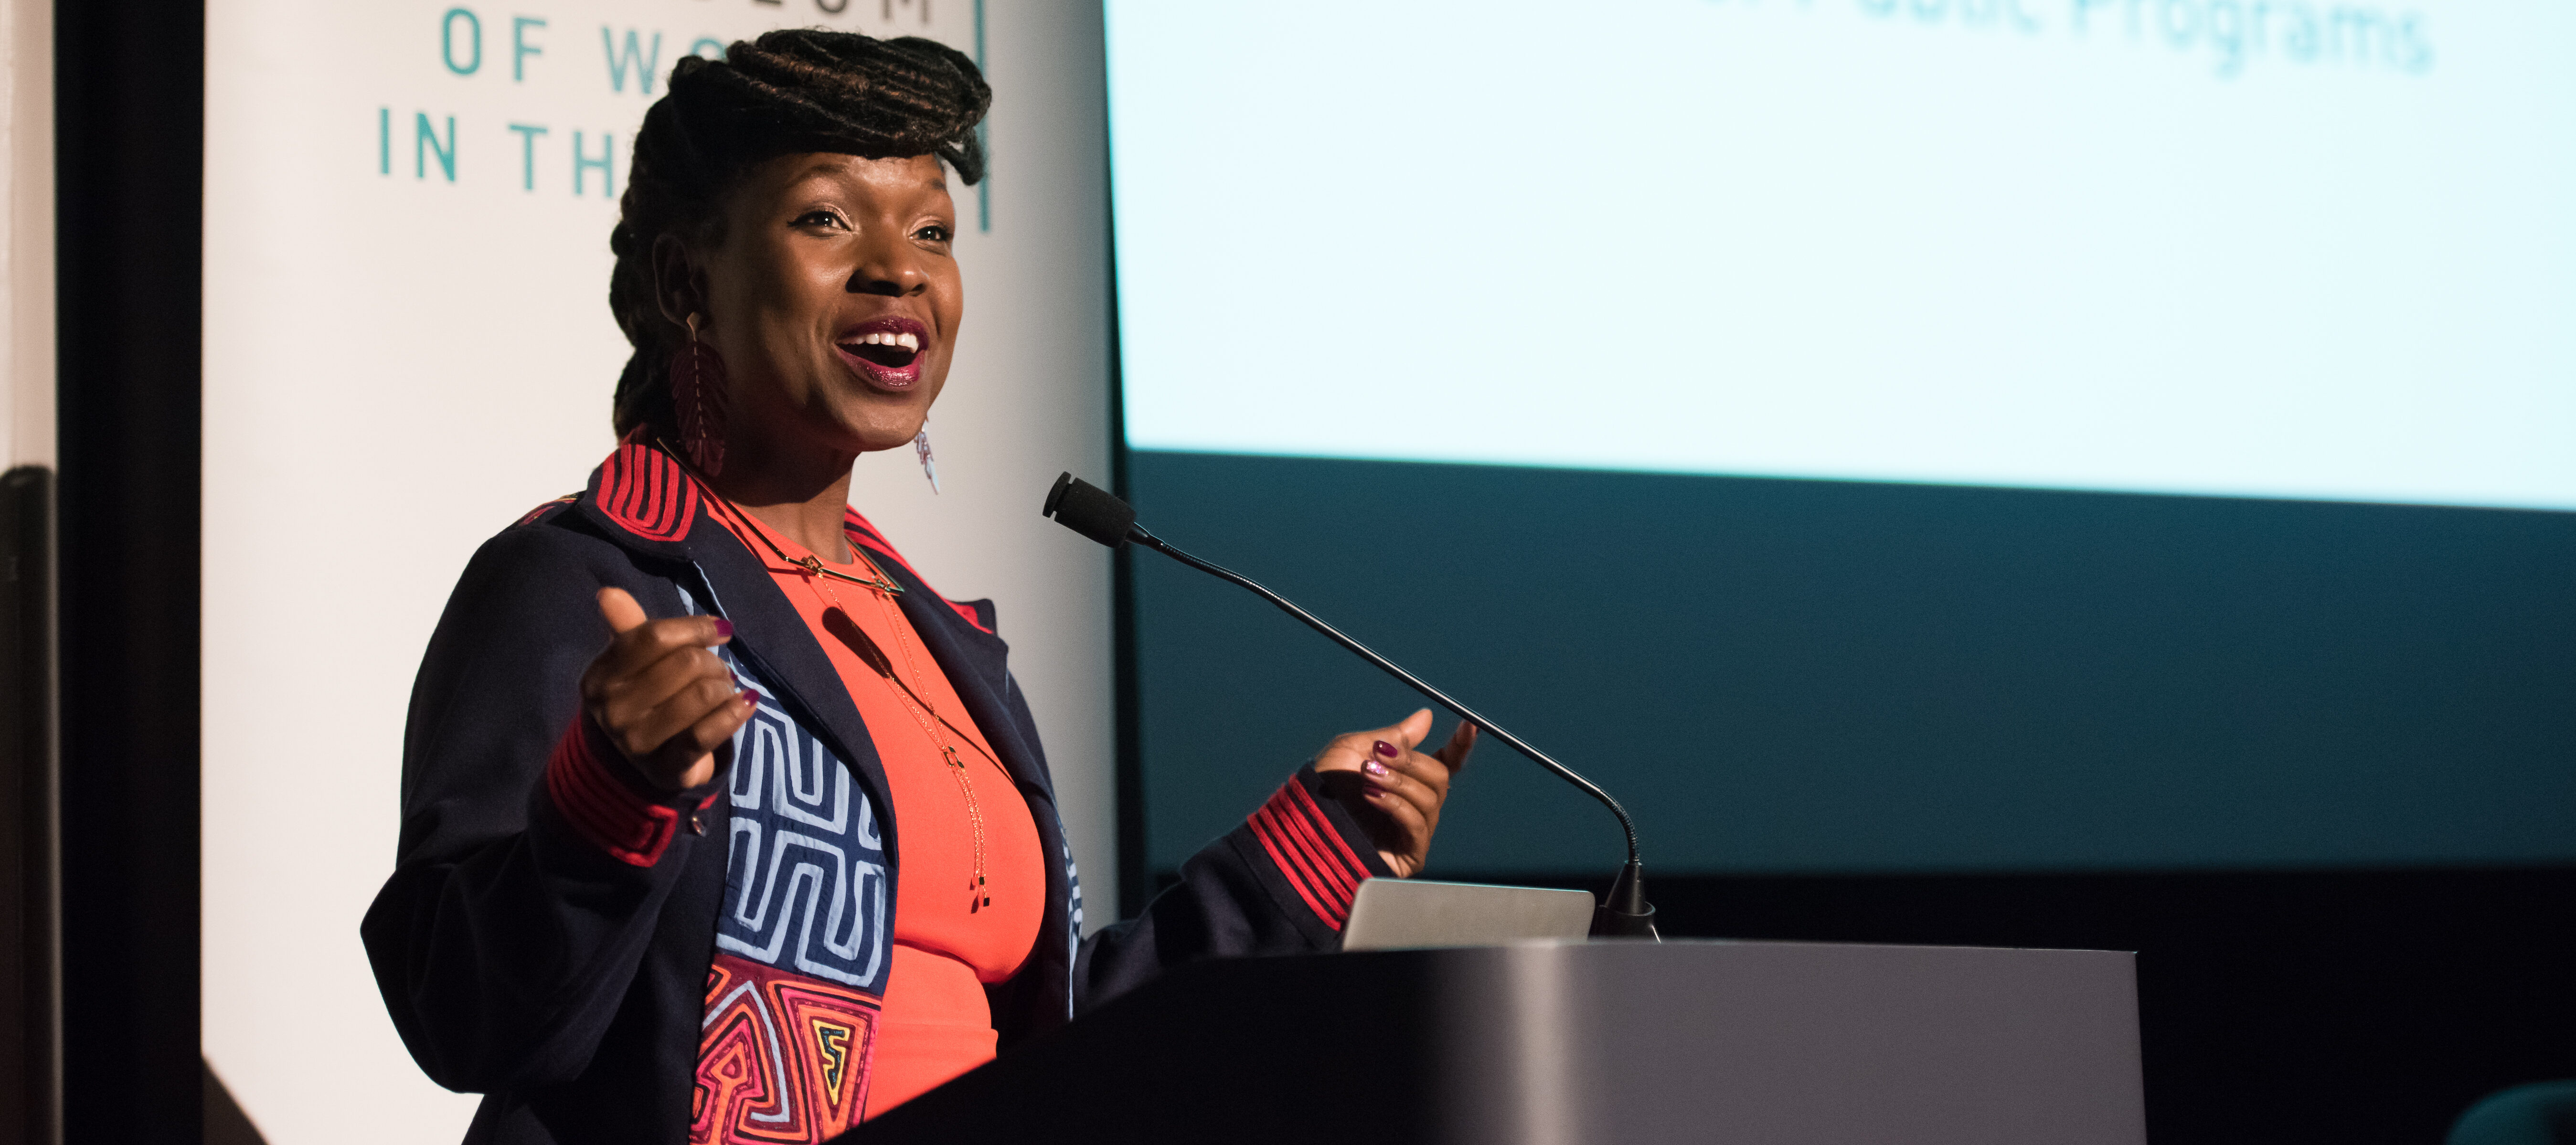 Melani N. Douglass speaks at a podium at the National Museum of Women in the Arts during a Fresh Talk event. She is a dark-skinned adult woman wearing a colorful top and smiling.